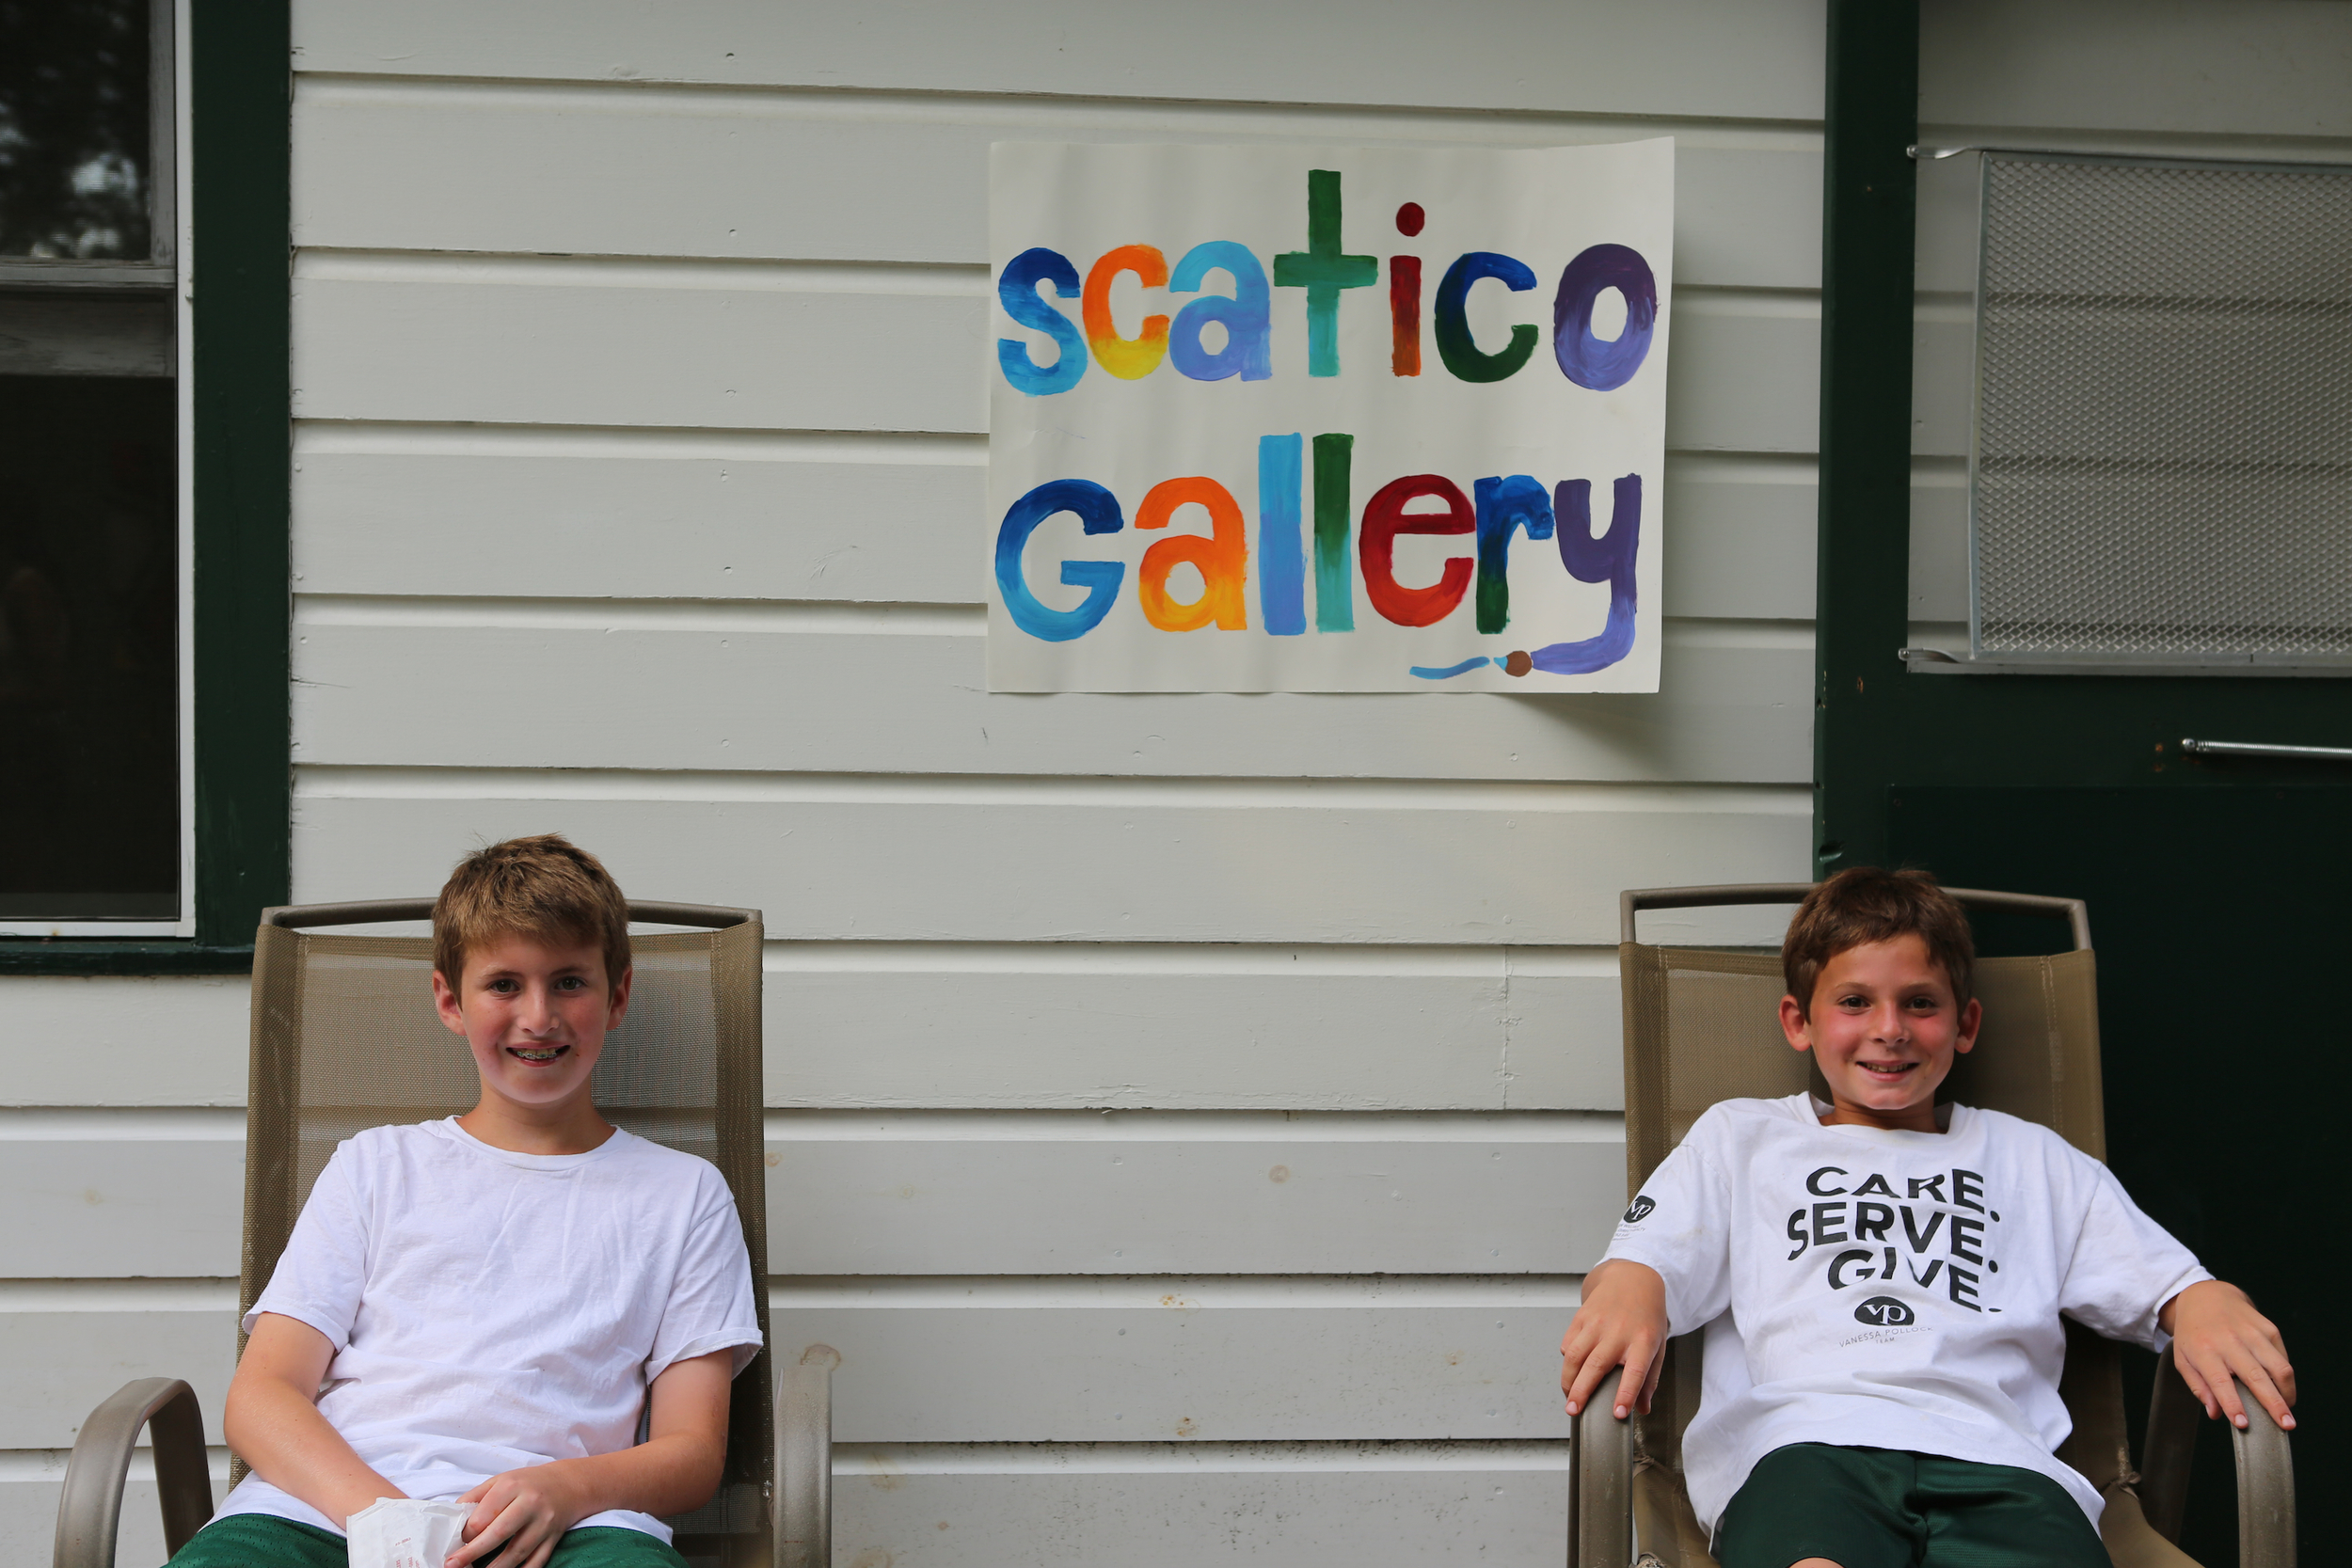 Welcome to the Scatico Gallery